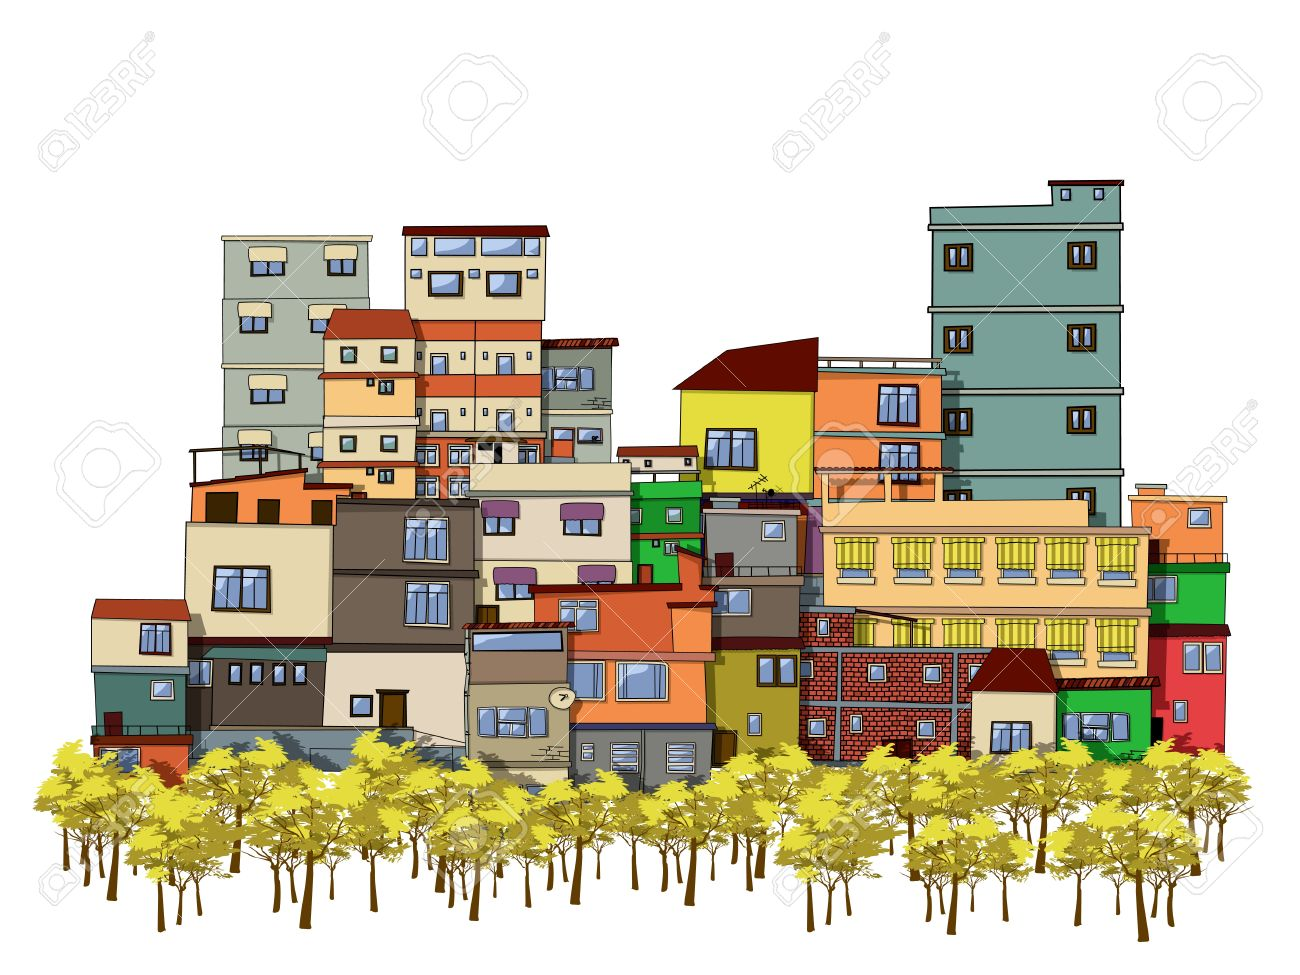 1300x975 Cartoon Drawing Of A City With Trees And Houses Royalty Free